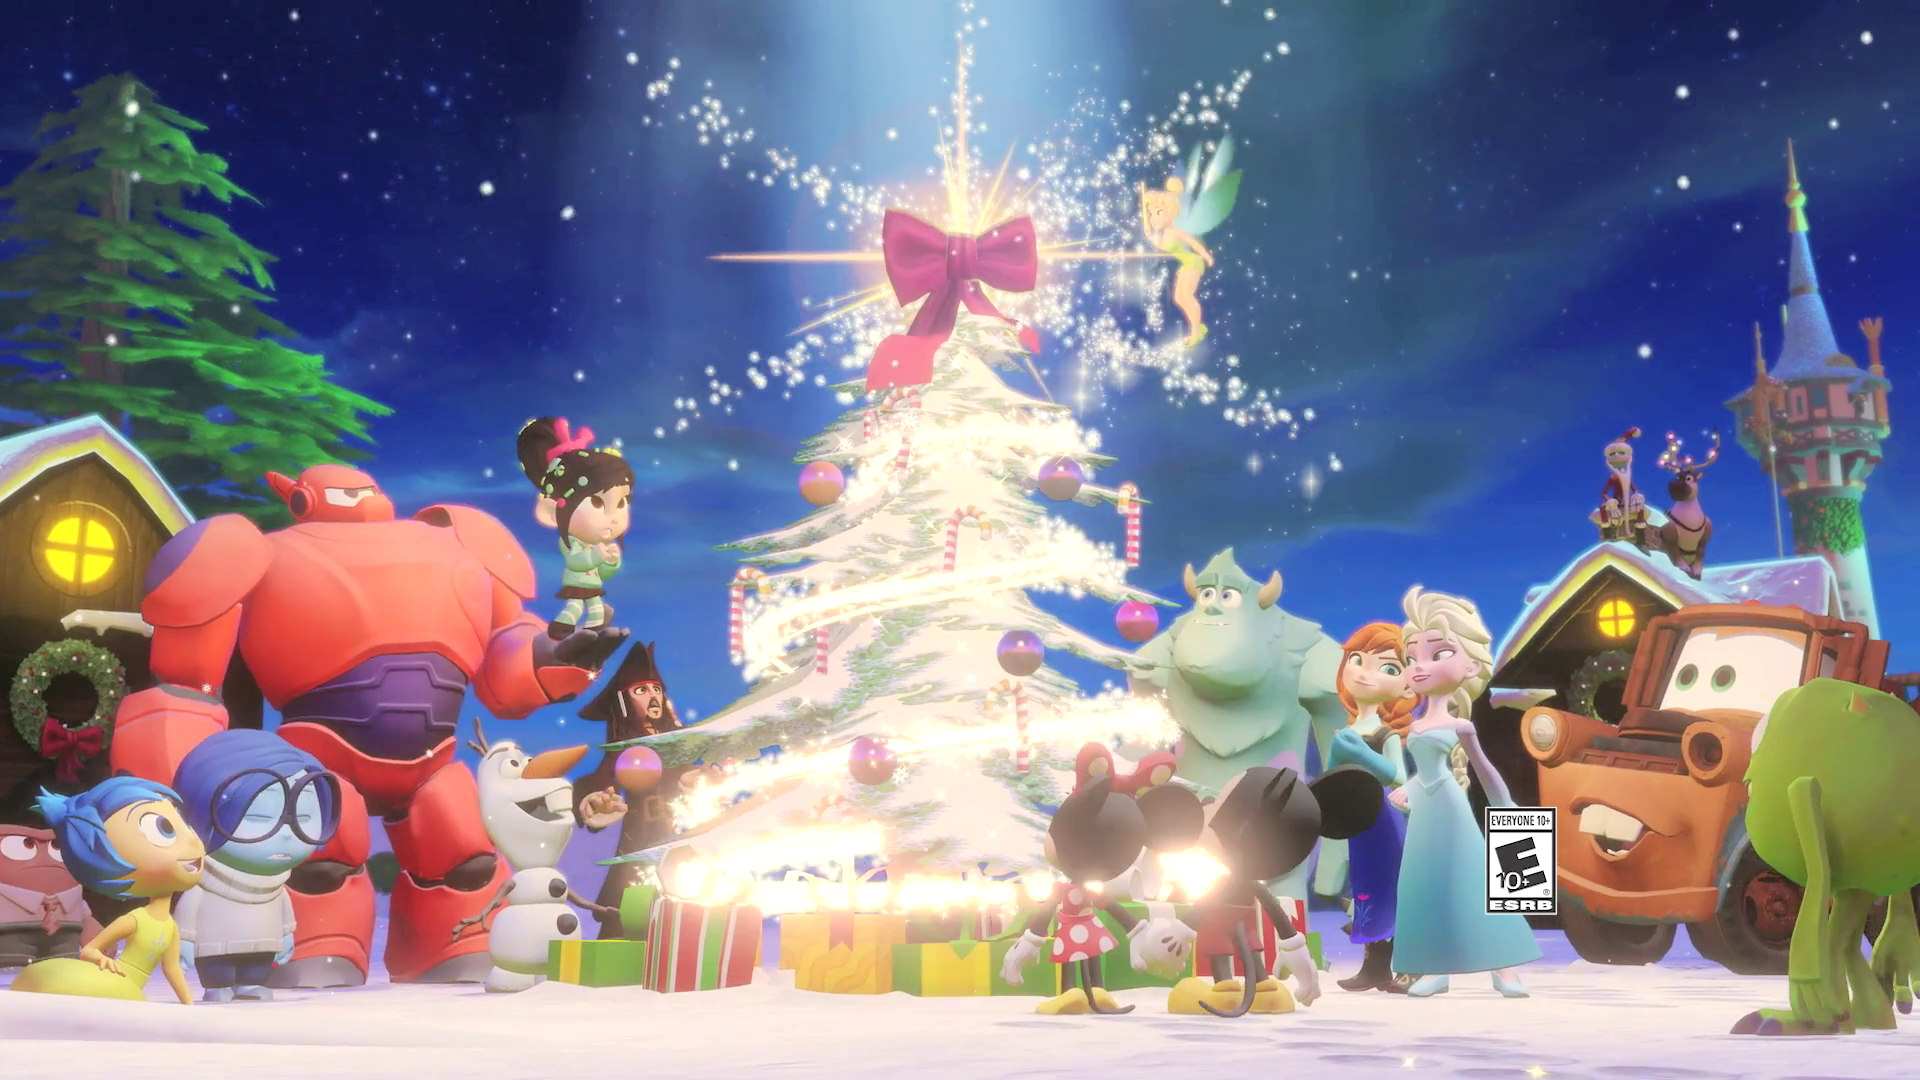 12 Days of Disney Infinity | Official Trailer | Disney Infinity 3.0